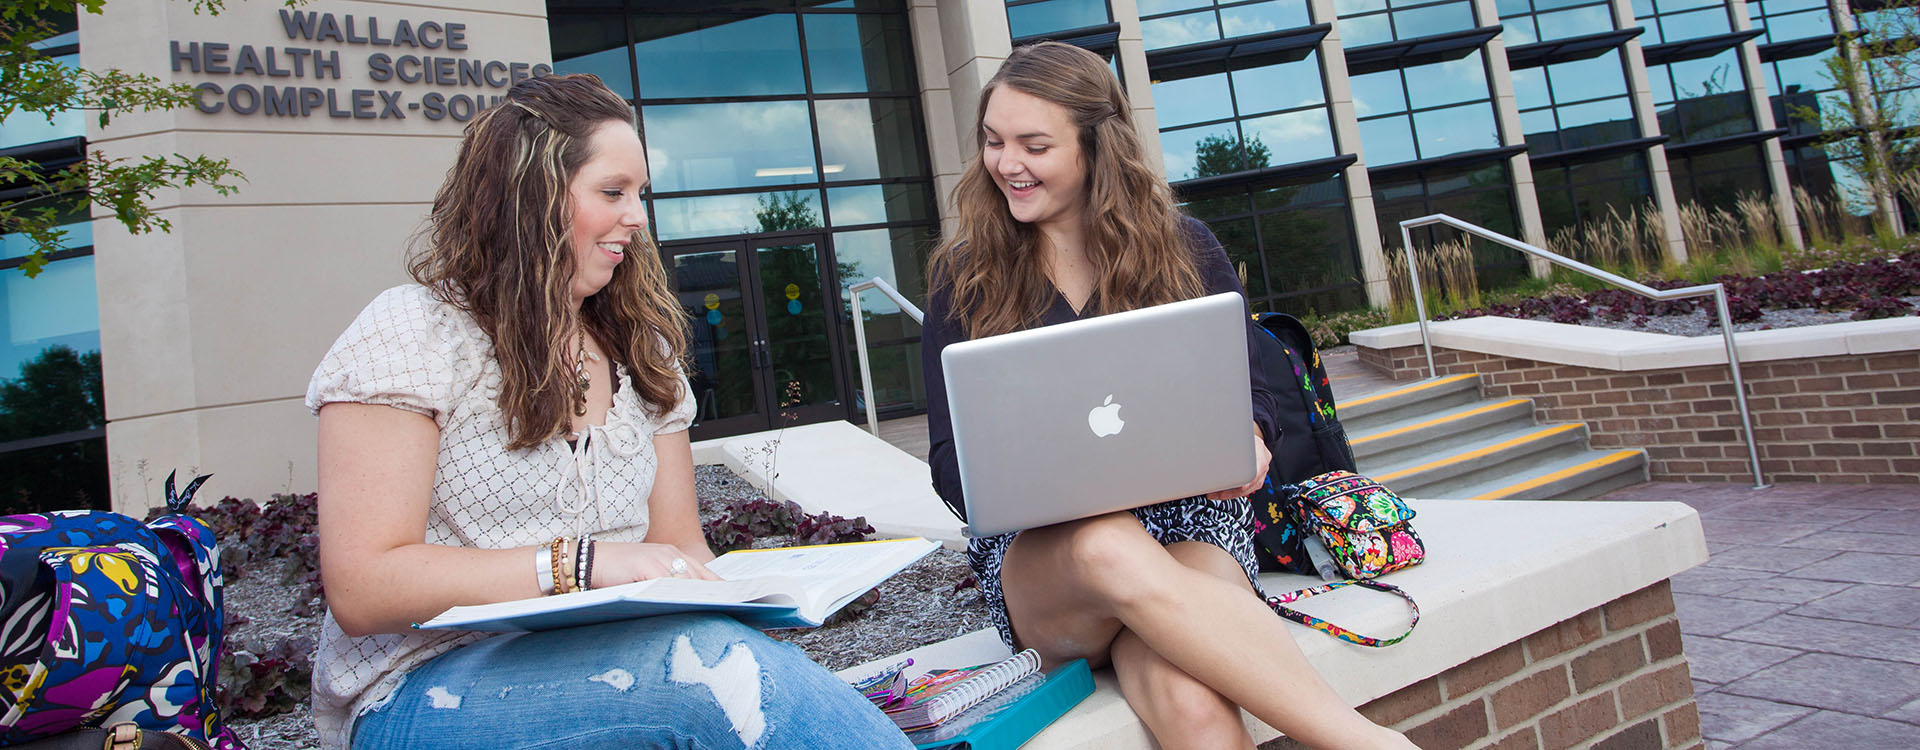 two girls sitting outside with a laptop